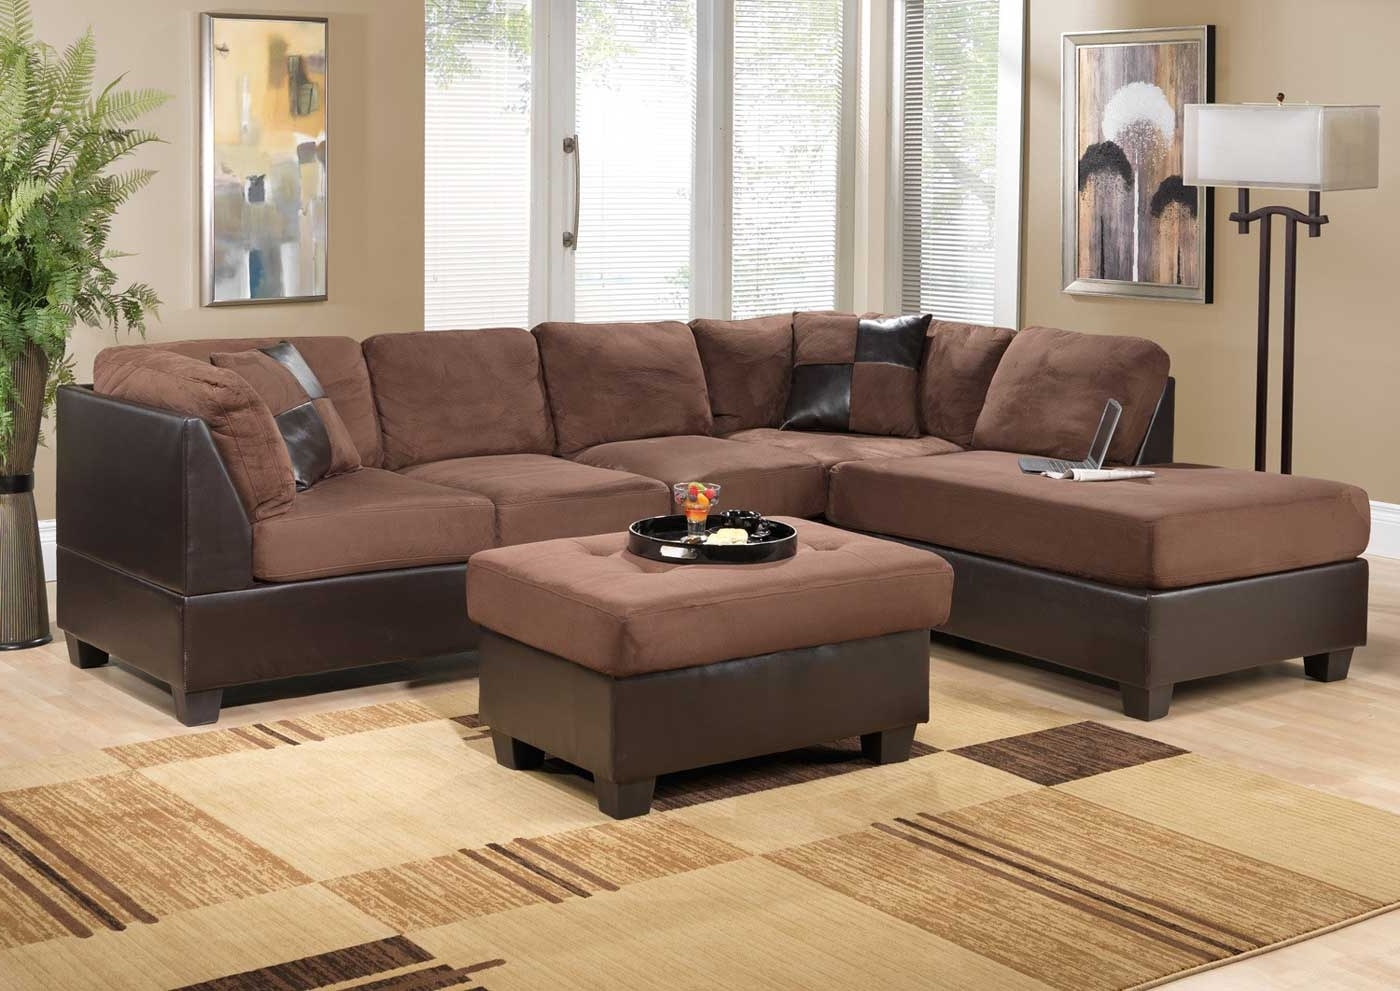 Furniture : Sectional Sofa Under 200 Corner Couch Tao Beach Regarding Well Known Vt Sectional Sofas (View 11 of 15)